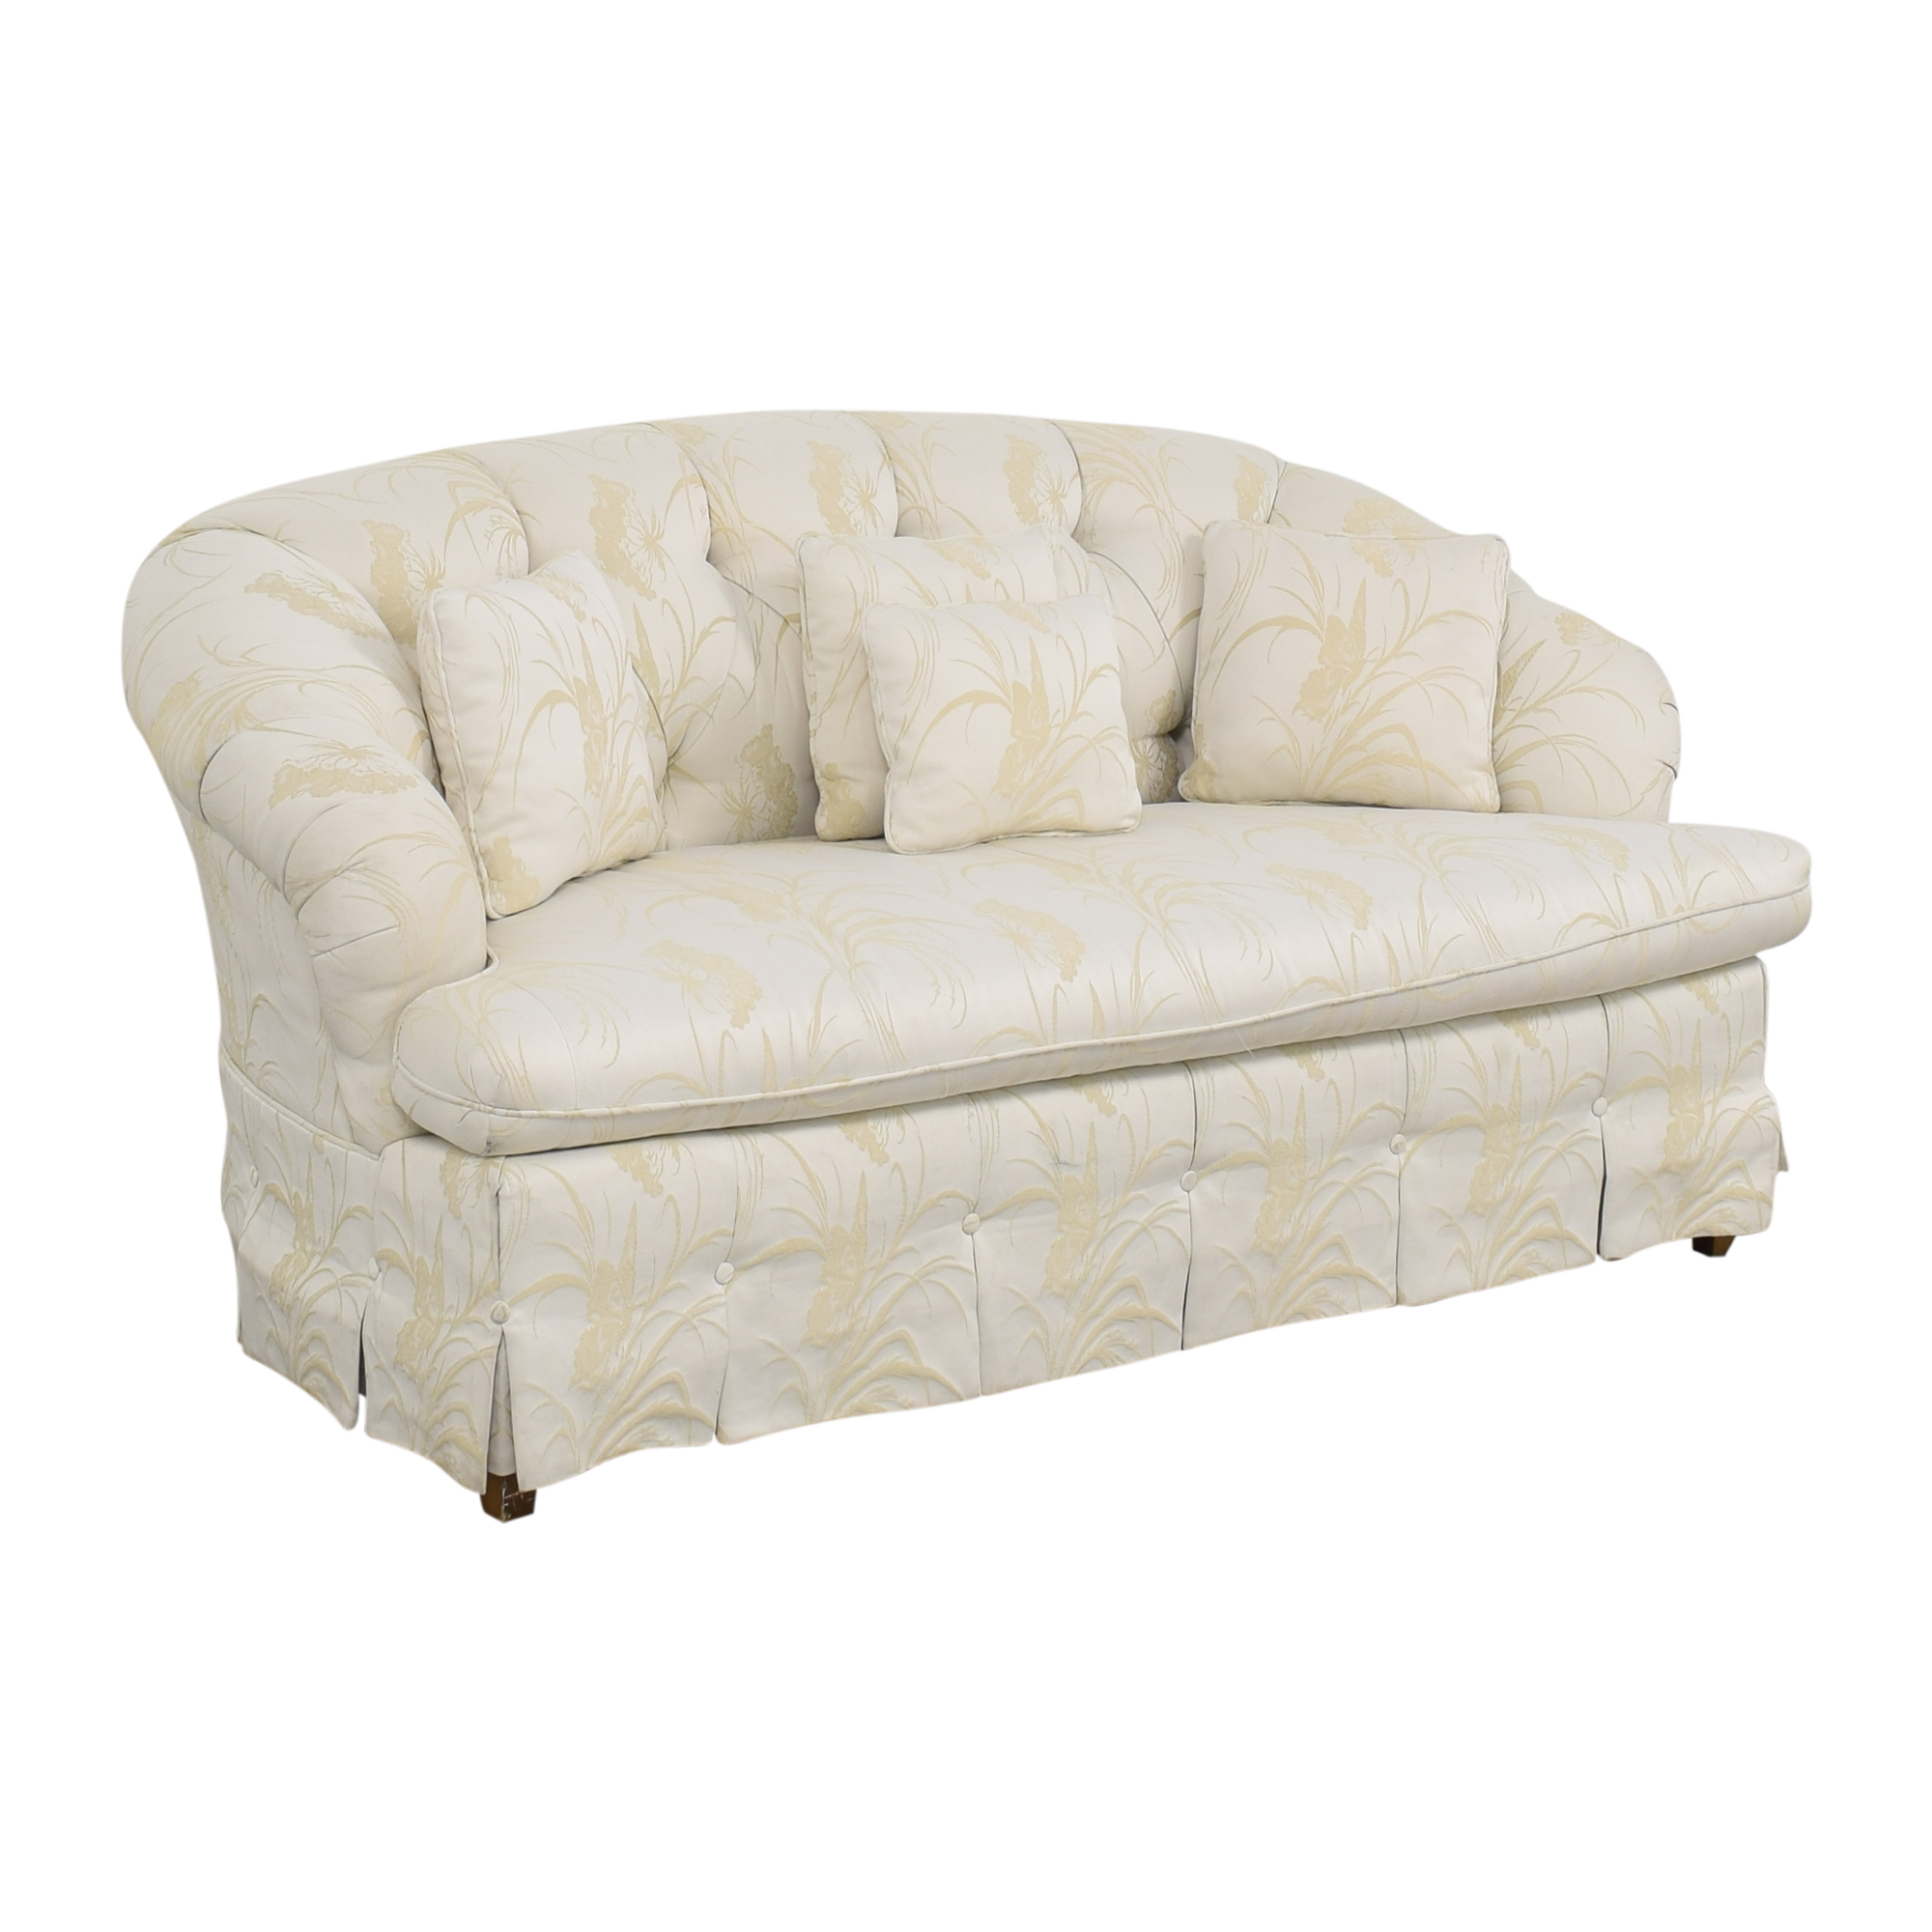 Key City Furniture Key City Furniture Tufted Loveseat nyc